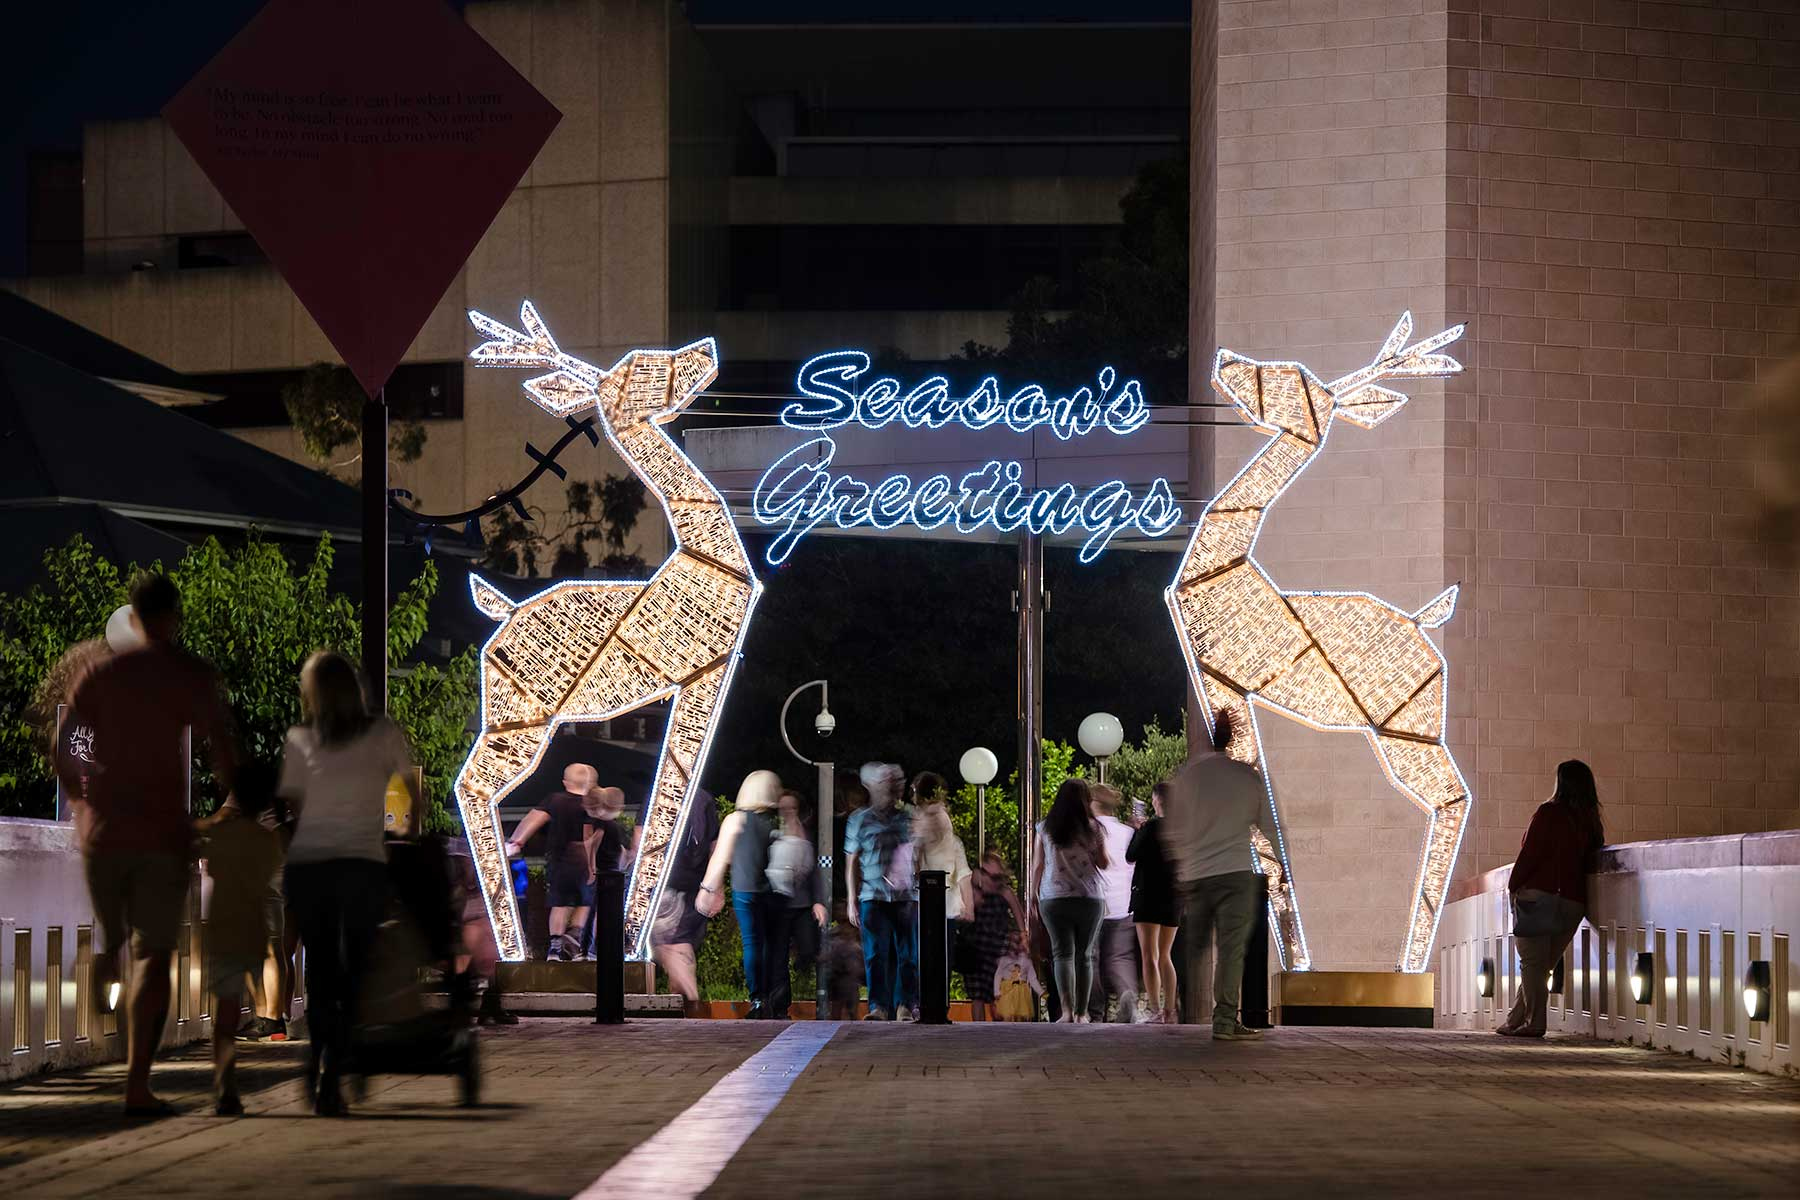 Seasons Greetings, Reindeer Arch at Perth Cultural Centre - starting point of the Perth Christmas Lights Trail in 2019